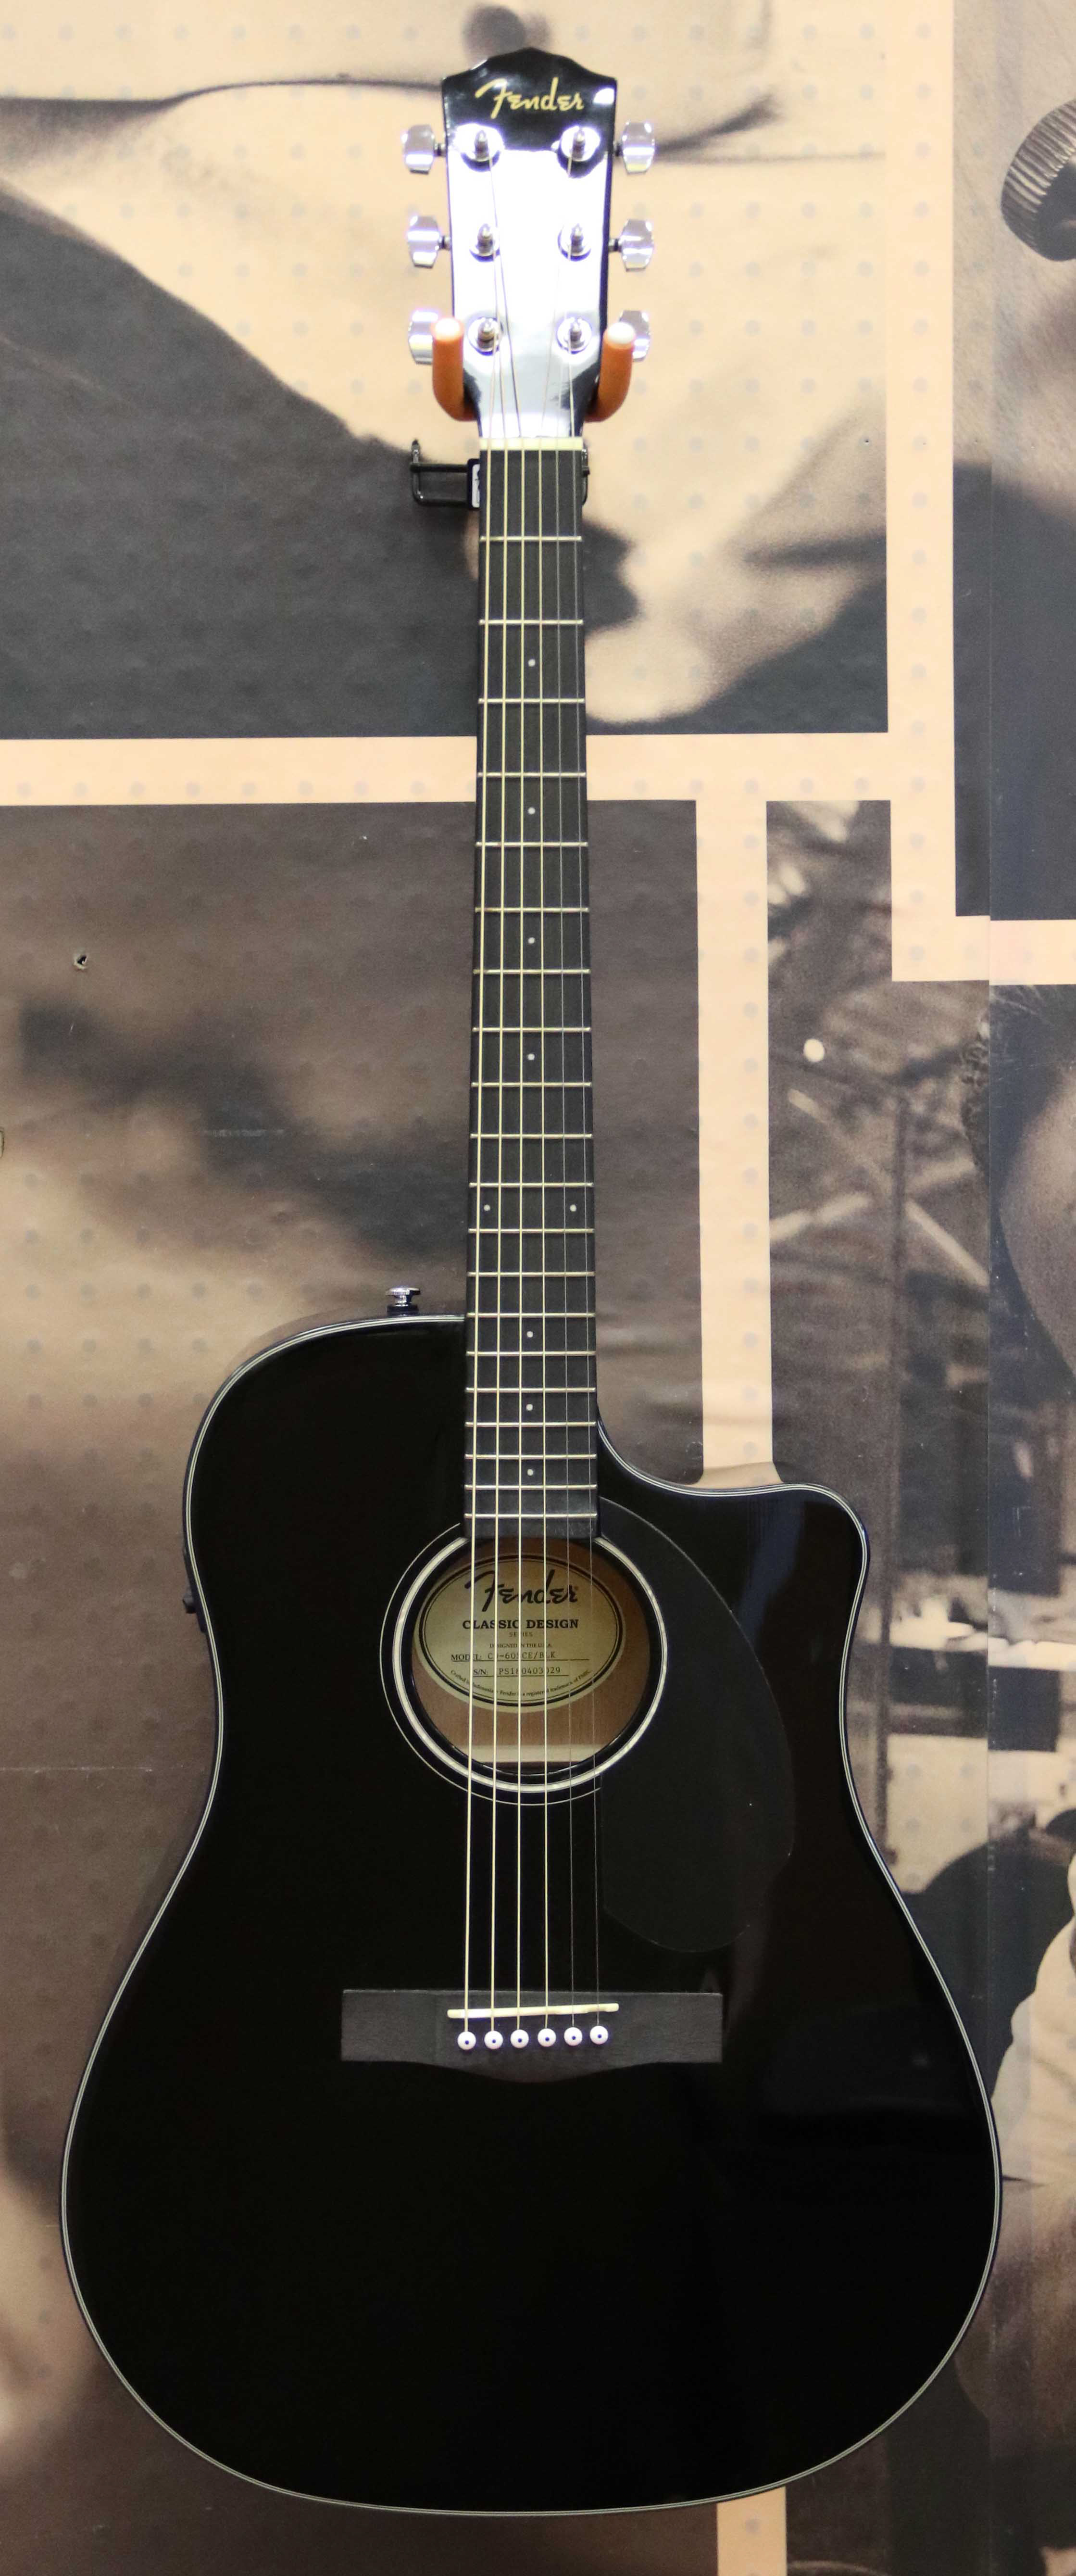 fender cd 60sce dreadnought acoustic electric guitar black dented in on botto ebay. Black Bedroom Furniture Sets. Home Design Ideas